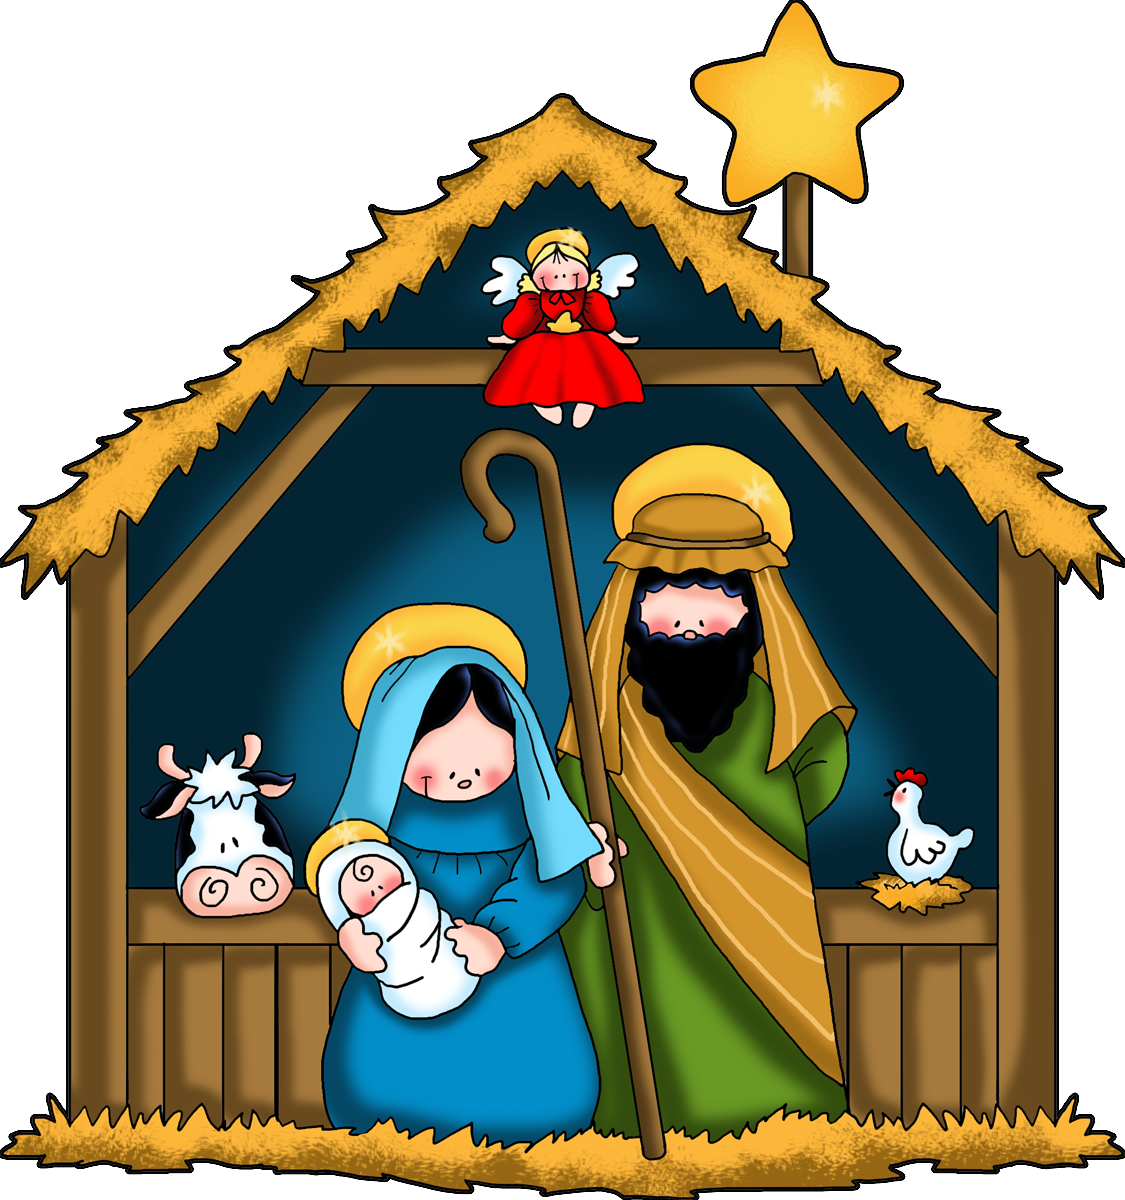 the nativity children free clip art google search kids rh pinterest com nativity scene clipart free nativity scene clipart silhouette